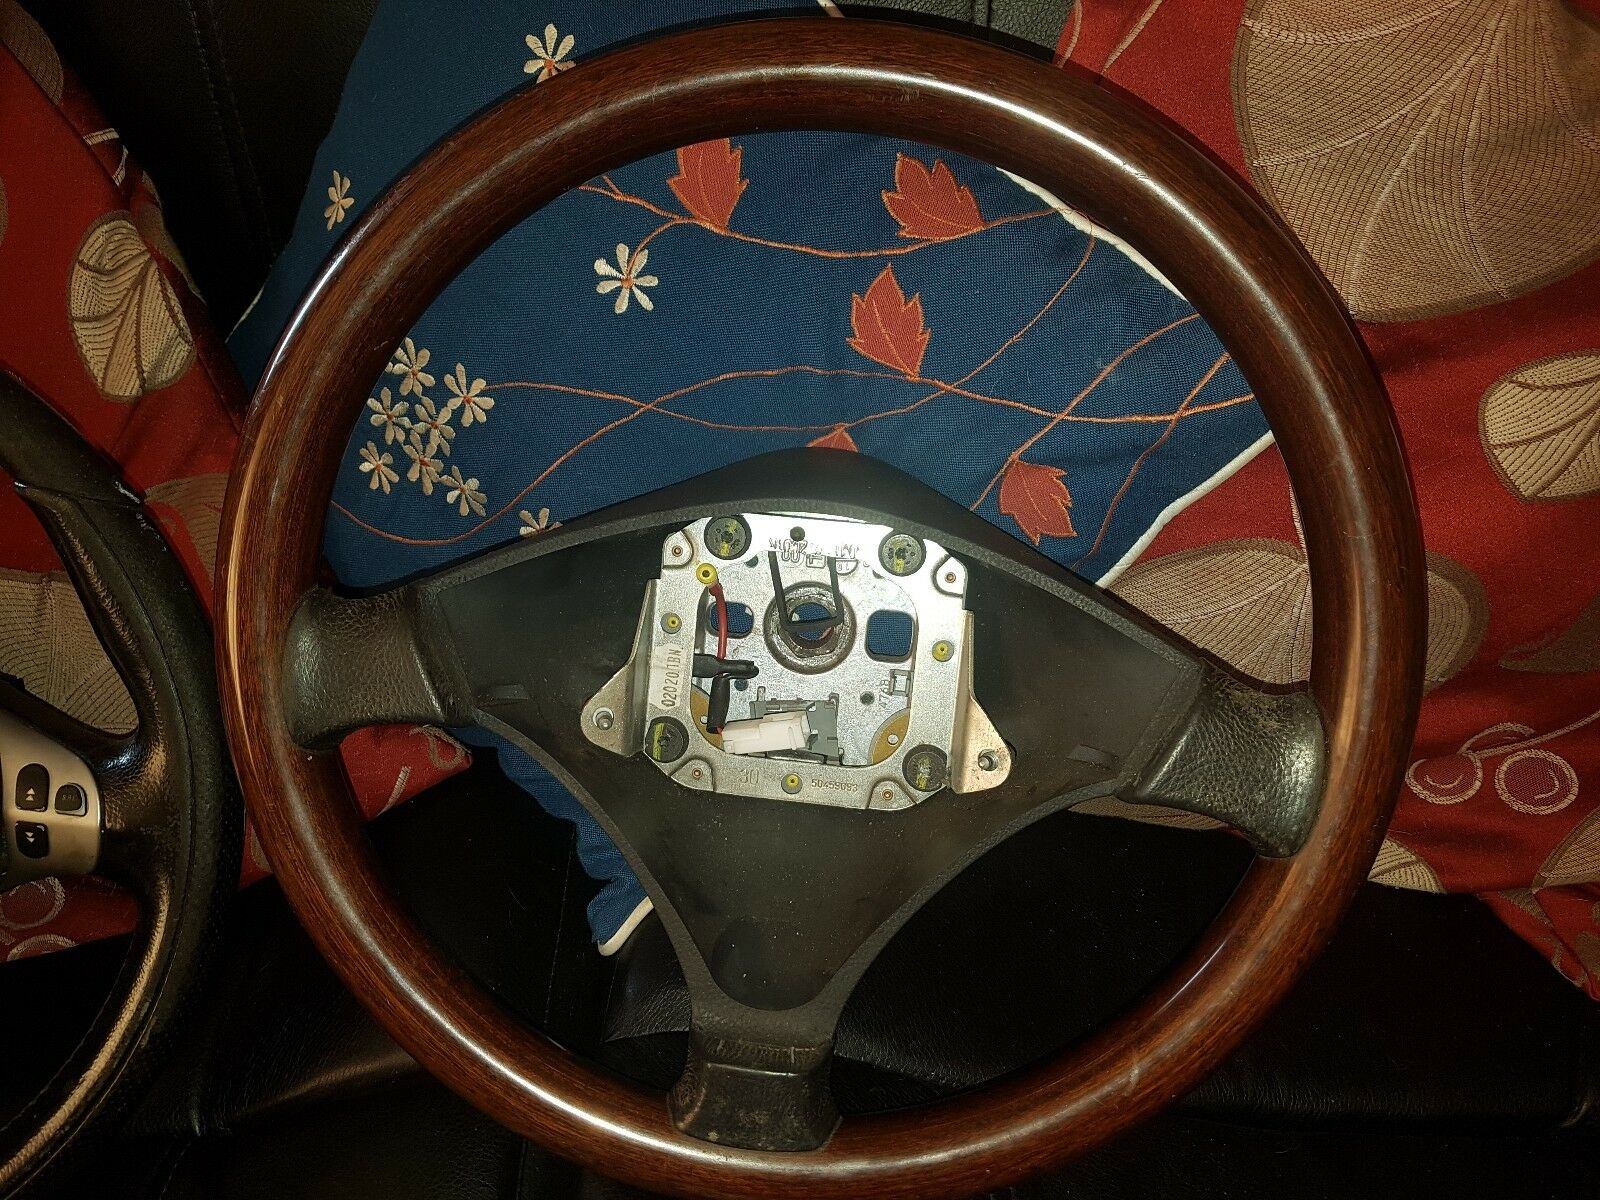 ALFA ROMEO 156 WOODEN steering wheel £45 00